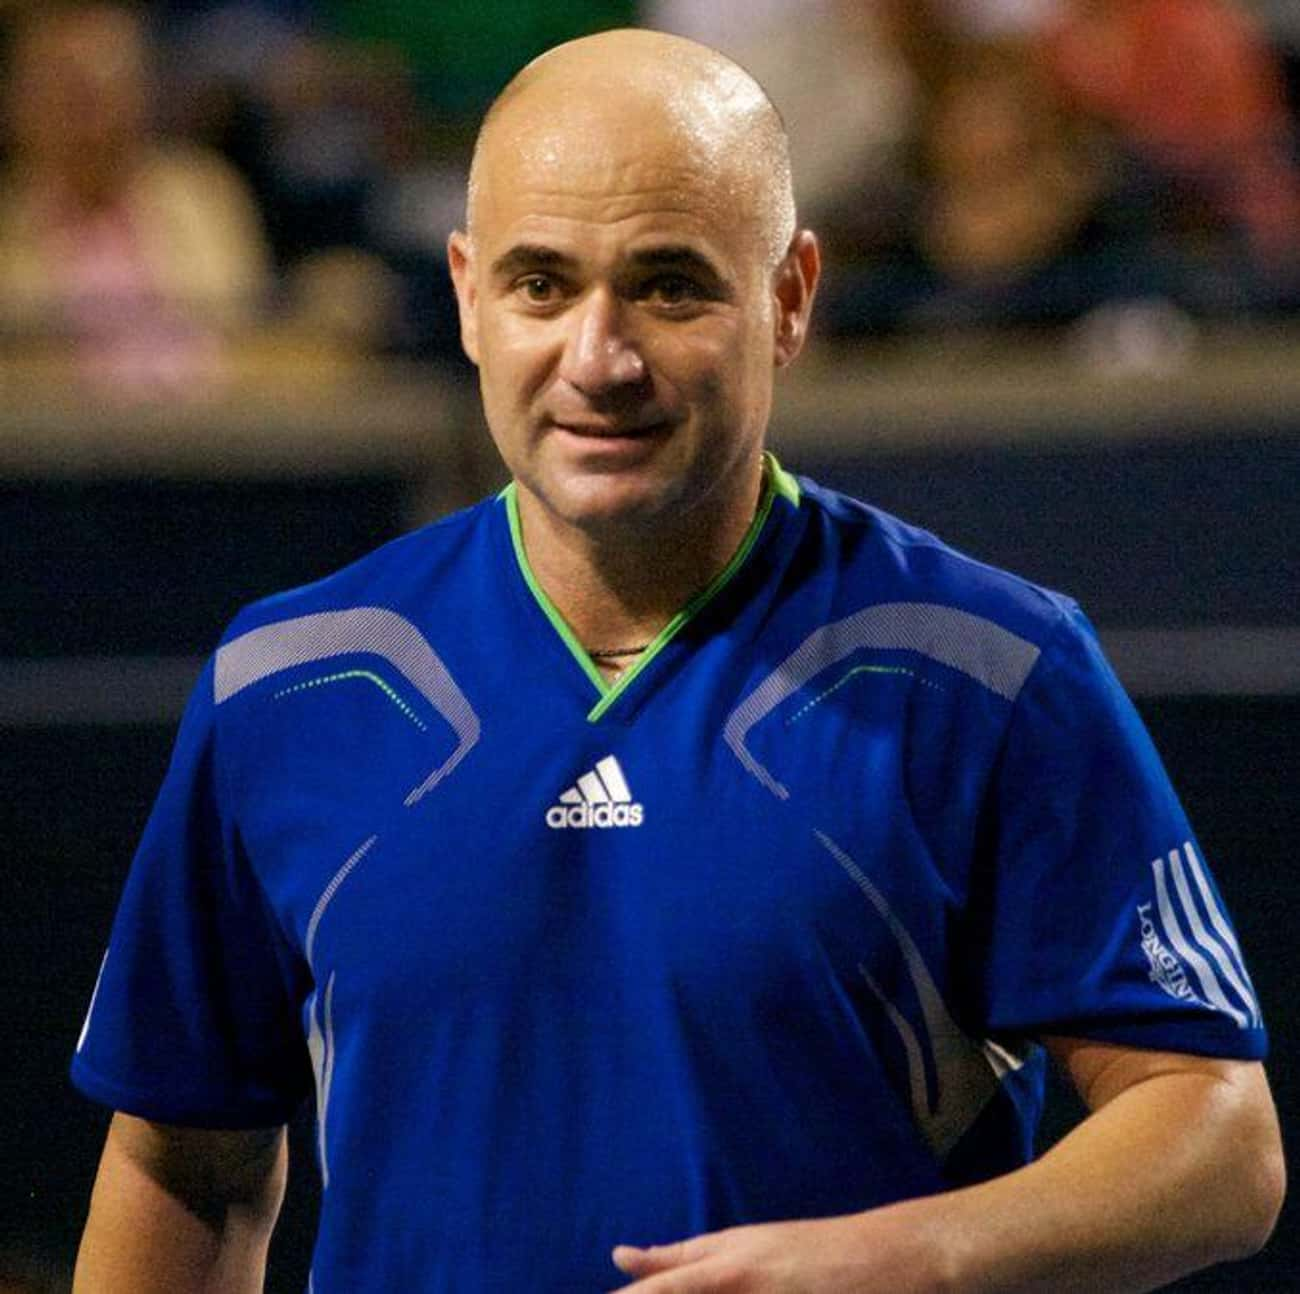 Andre Agassi is listed (or ranked) 3 on the list The Best Tennis Players from the United States